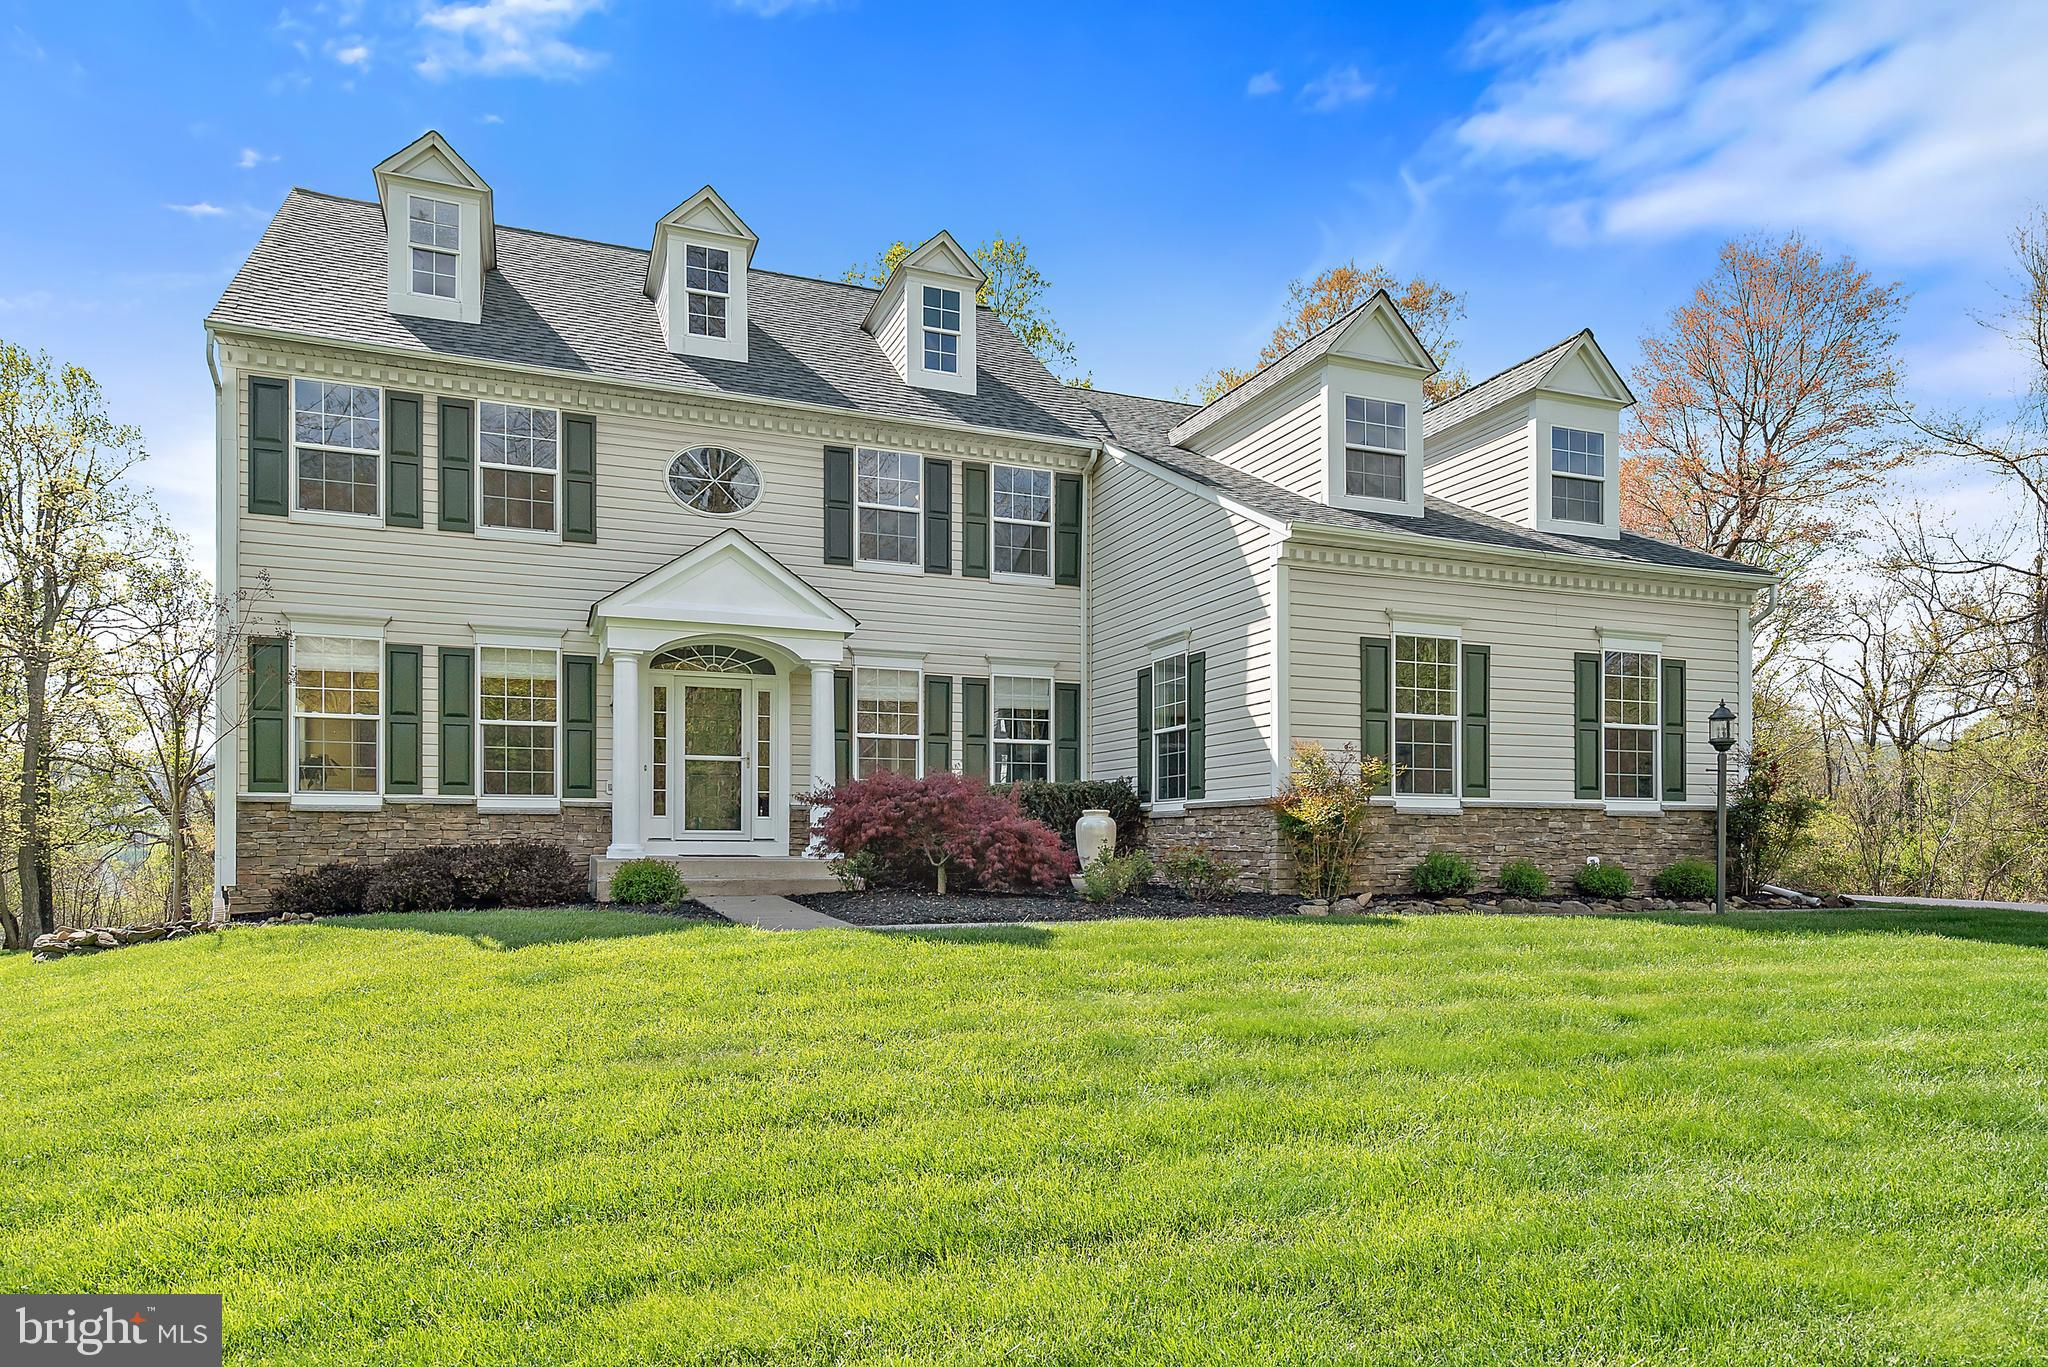 17229 Flint Farm Drive, Round Hill, VA 20141